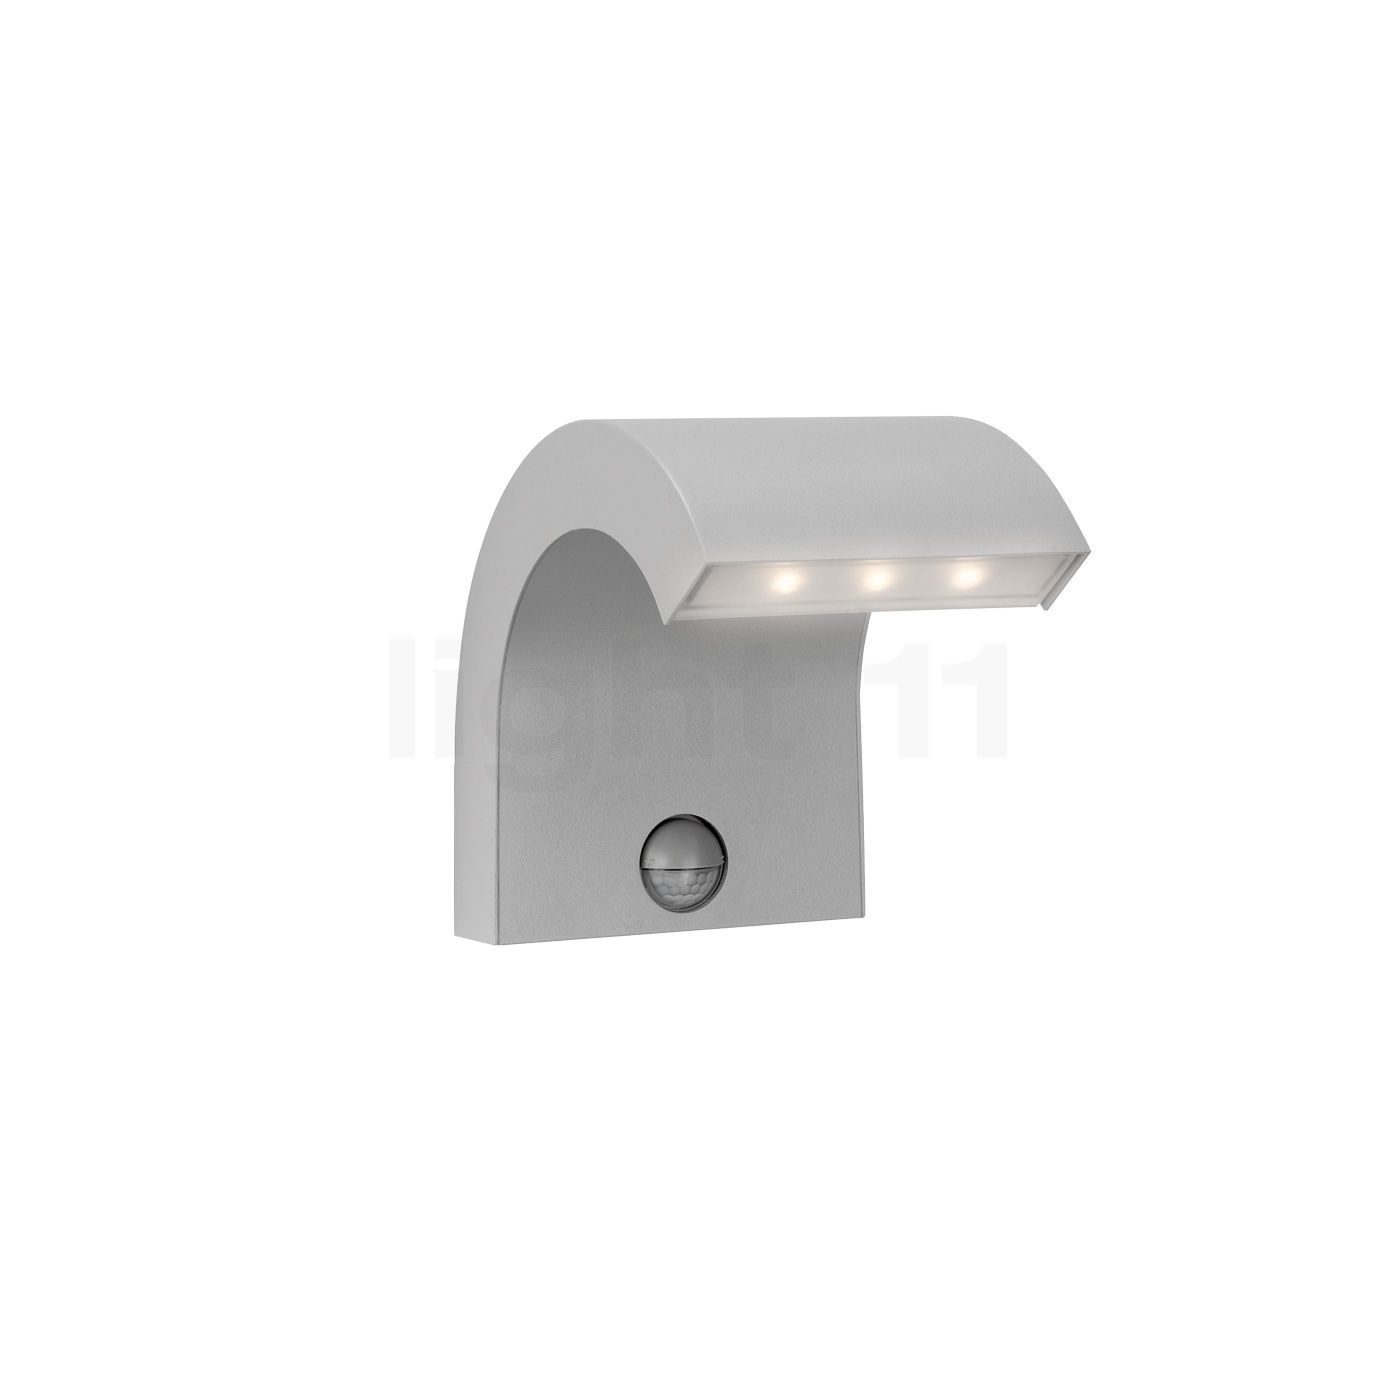 Philips ledino mygarden riverbank 16356 applique murale led for Applique philips led